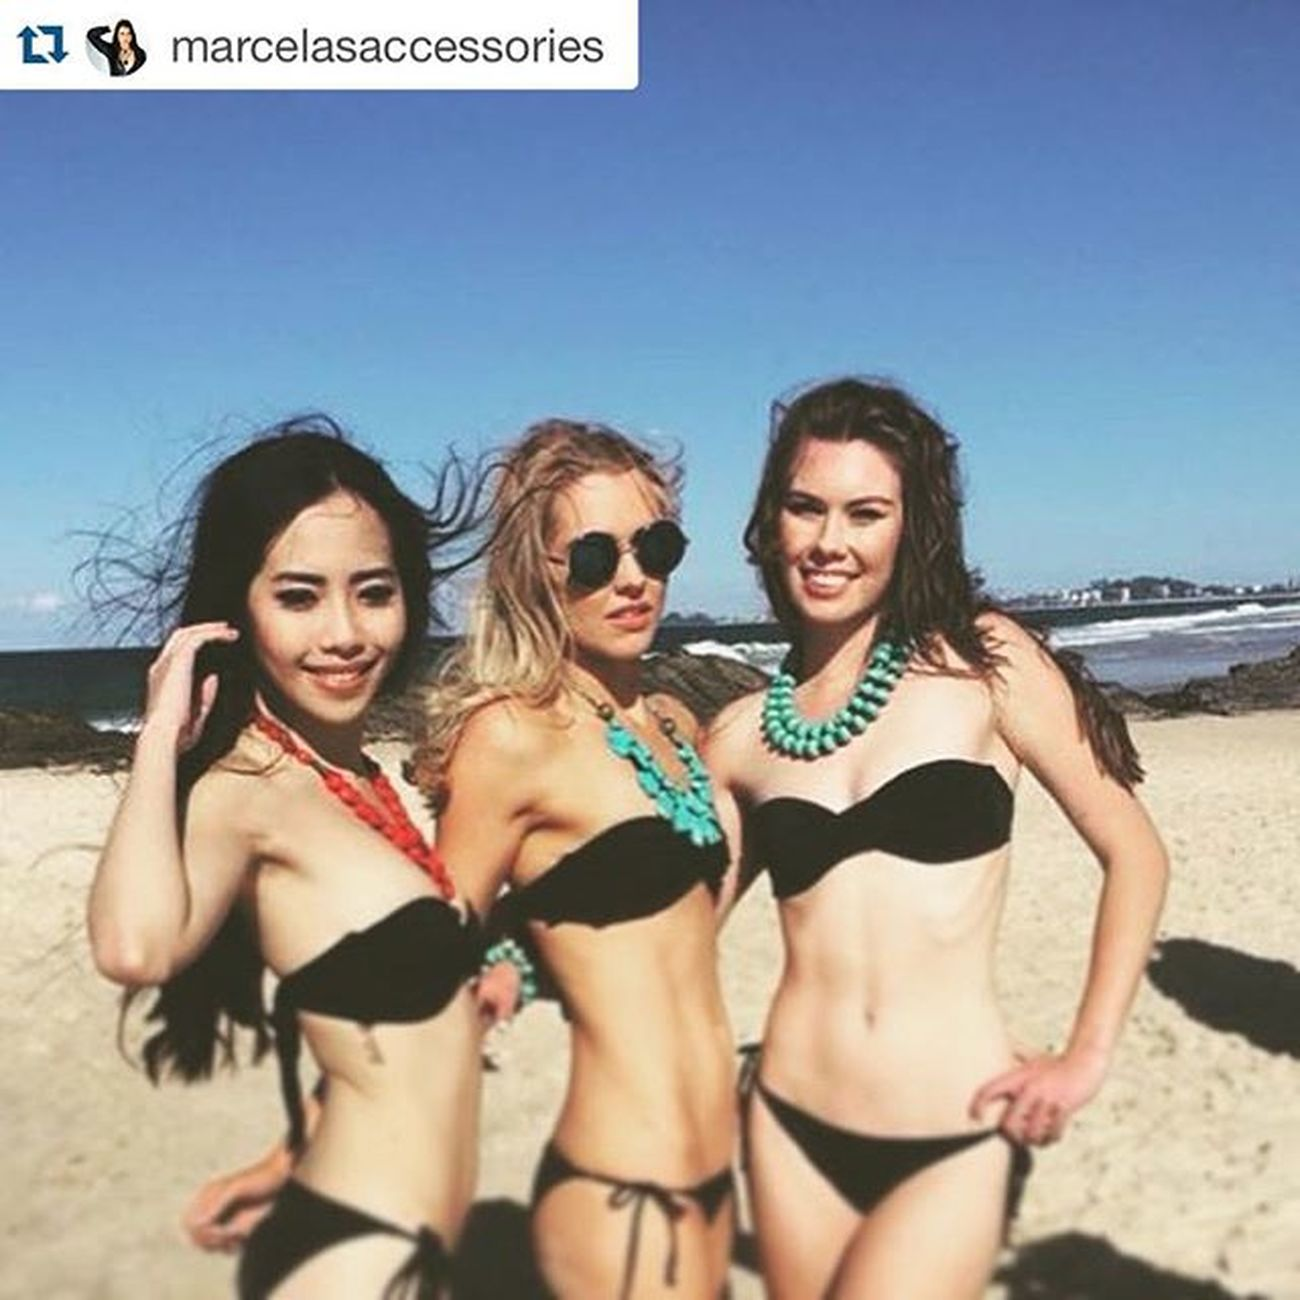 Repost @marcelasaccessories of her models Behind the scenes from today's Shoot.😀🙋👌❤️ Marcelasaccessories Ss15 Lookbook Jewellery Handcrafted Handmade Fresh Models Beach Weekend Fashion Fashionista Style TBT  Makeupartist Photoshoot Fashion Pose Jewelerydesigner @jkdimagery @mystiquemodels